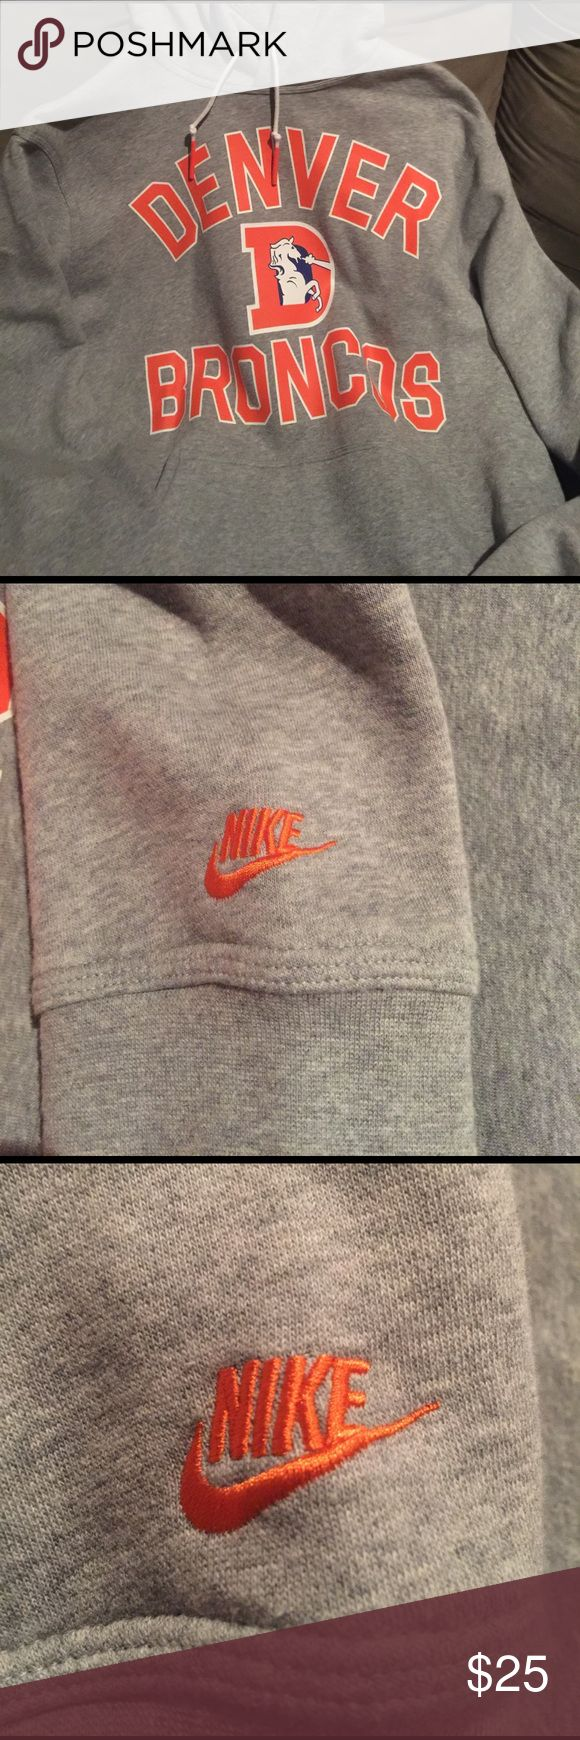 Nike Denver Broncos Hoodie I've only wore this two times! It was purchased in Denver at the Mile High Stadium! Nike Shirts Sweatshirts & Hoodies